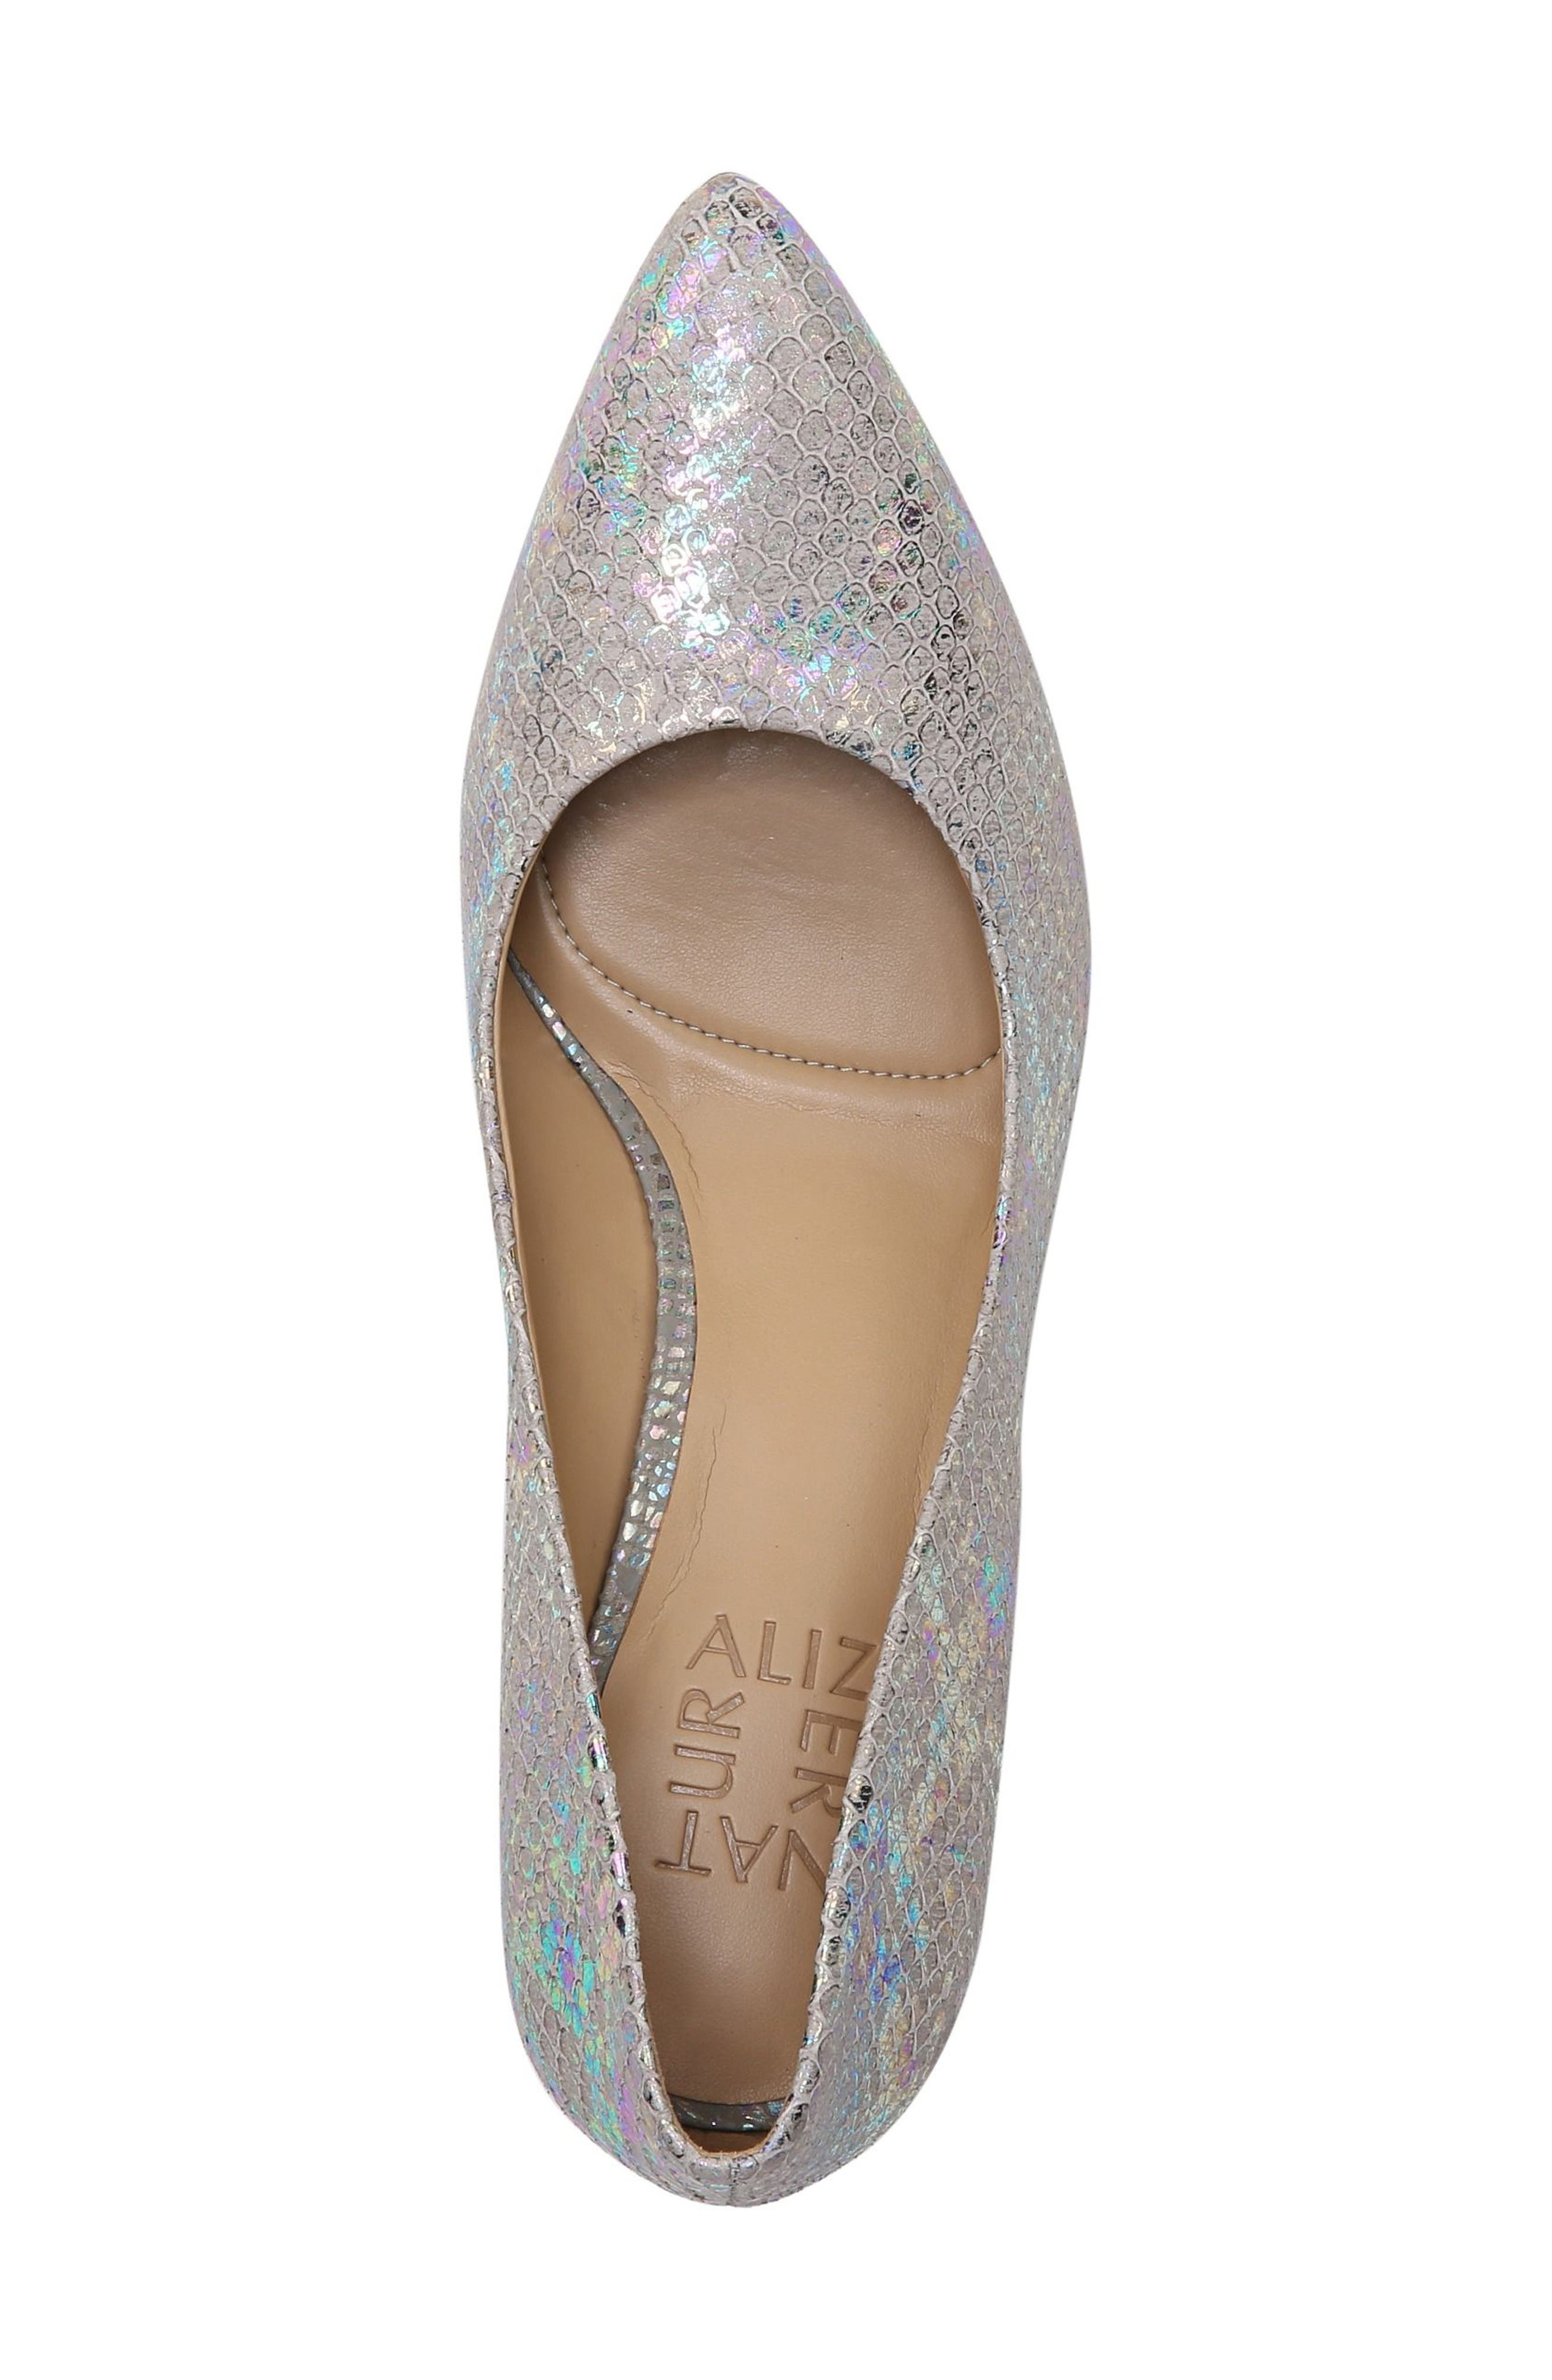 Natalie Pointy Toe Pump,                             Alternate thumbnail 5, color,                             Silver Snake Print Leather